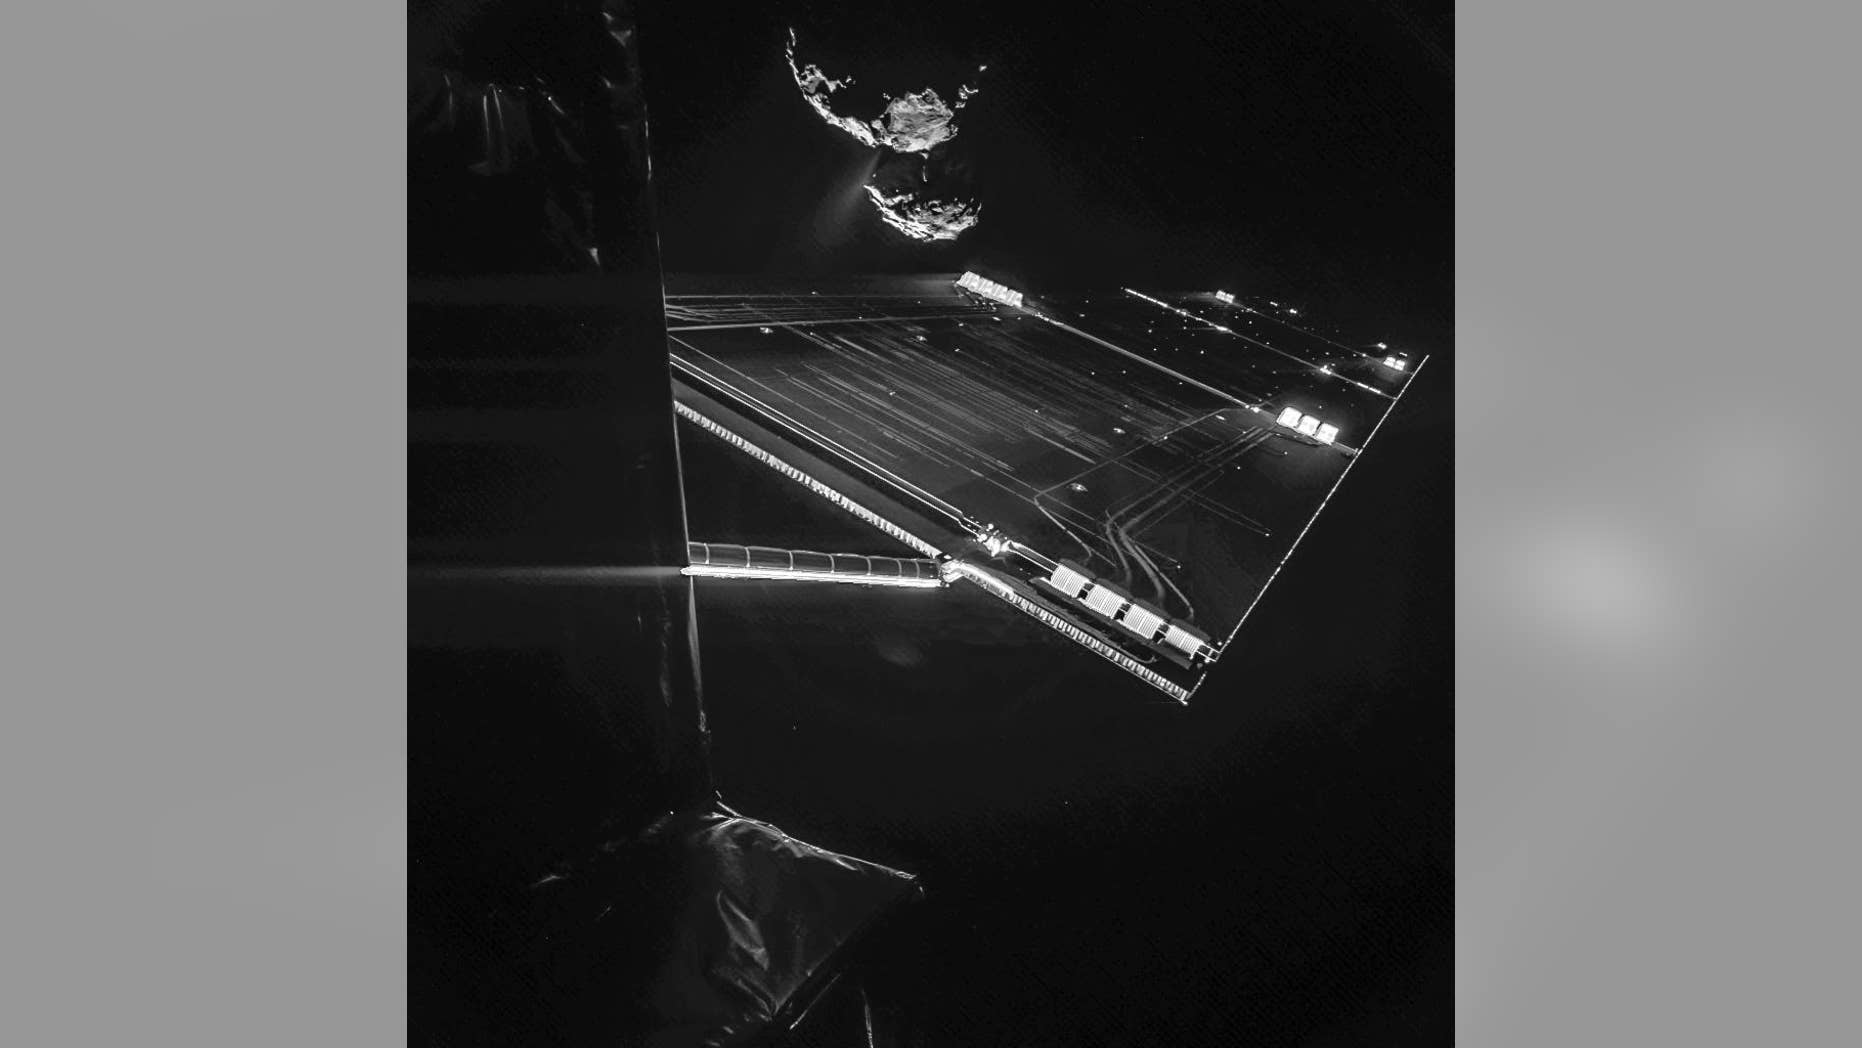 The image composed of two different images and provided by the European Space Agency ESA on Wednesday, Oct. 15, 2015 shows parts of the spacecraft Rosetta in front of the comet 67P/Churyumov–Gerasimenko from a distance of about 16 km from the surface of the comet. The image was taken on 7 October and captures the side of the Rosetta spacecraft and one of Rosetta's 14 m-long solar wings, with the comet in the background.  Two images with different exposure times were combined to bring out the faint details in this very high contrast situation. The comet's active 'neck' region is clearly visible, with streams of dust and gas extending away from the surface. (AP Photo/ESA)